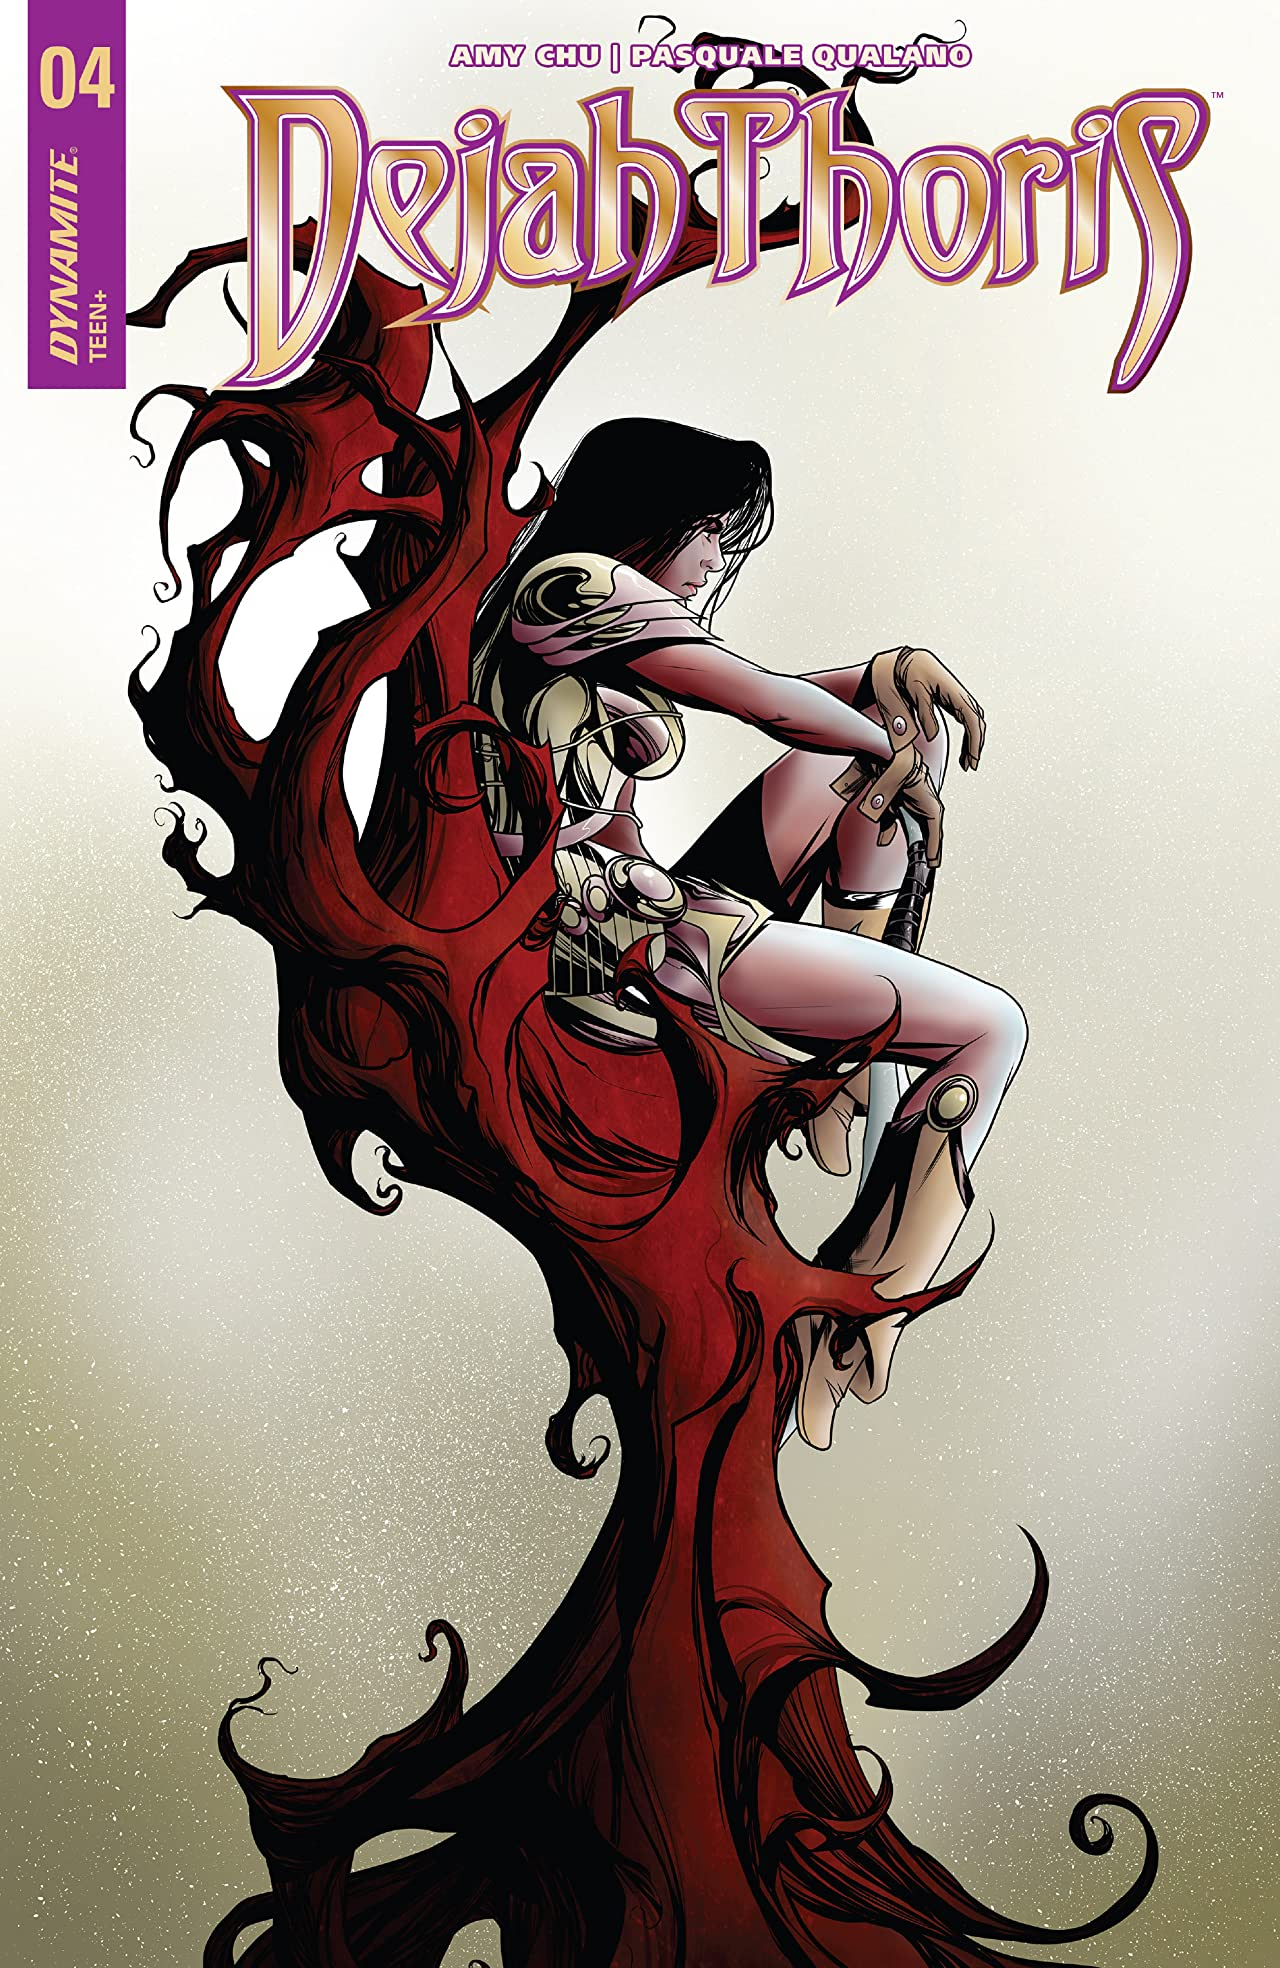 Dejah Thoris Vol. 4 #4